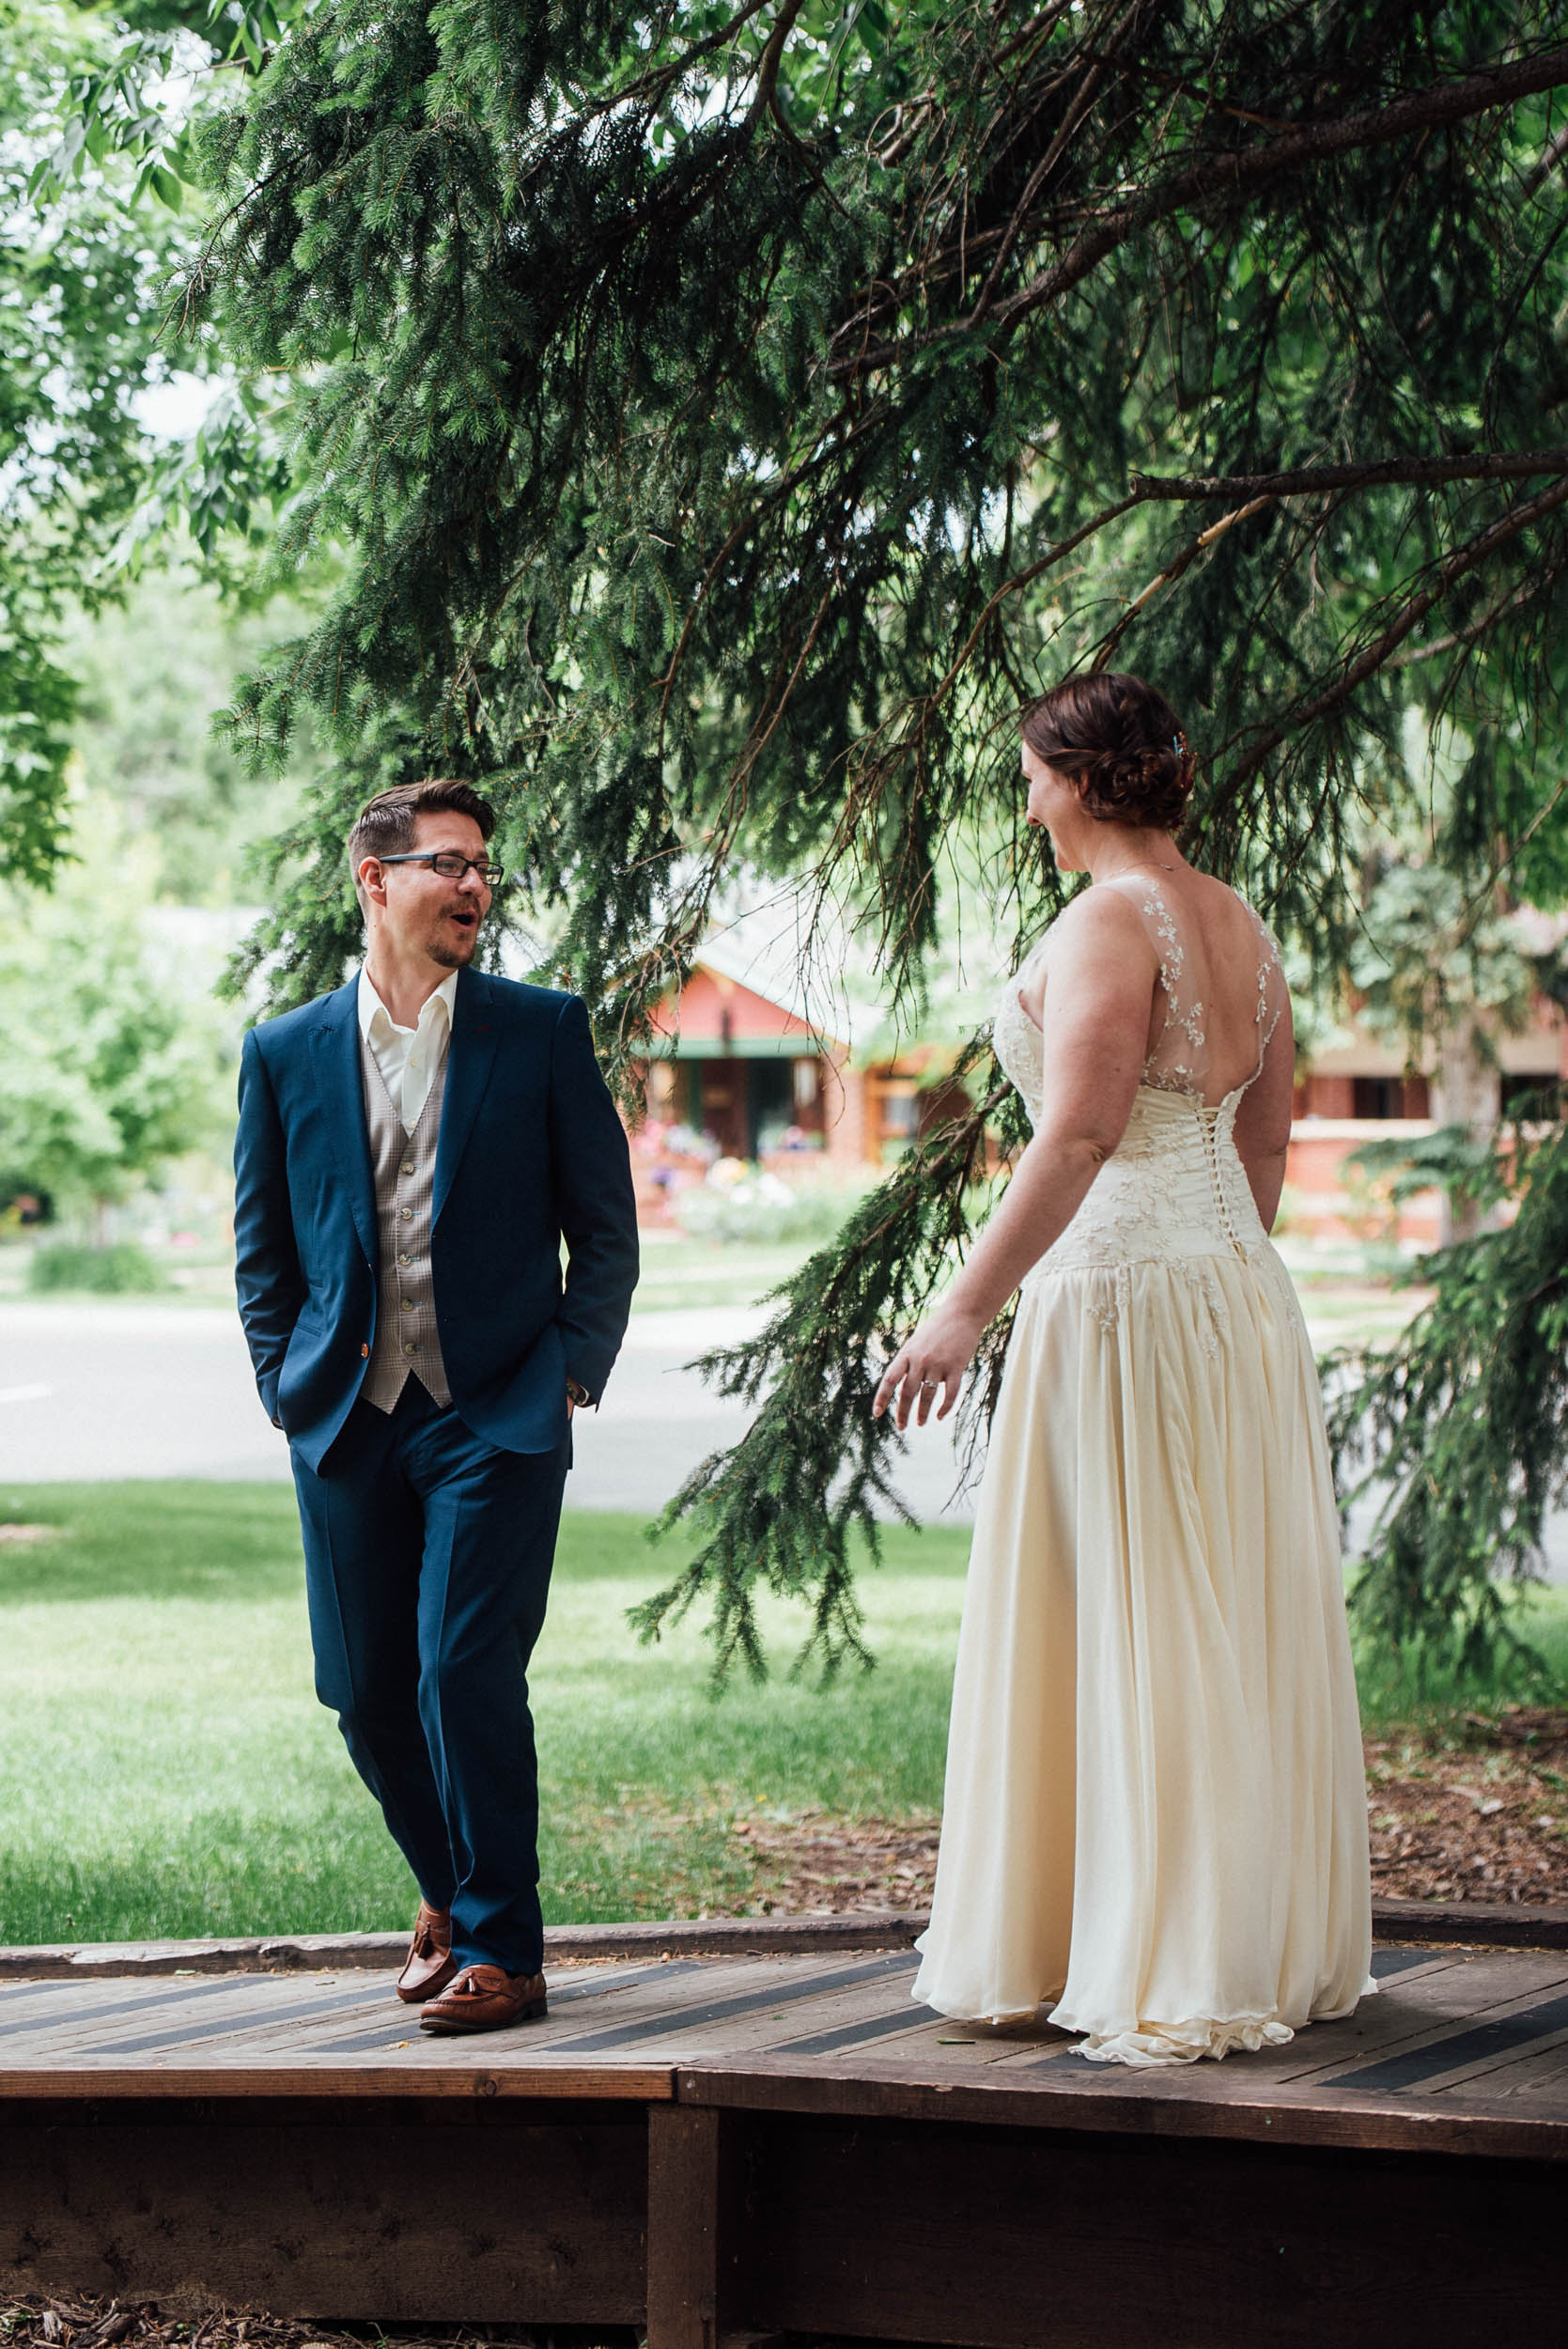 Colorado-Backyard-Wedding-Photographer-23.jpg